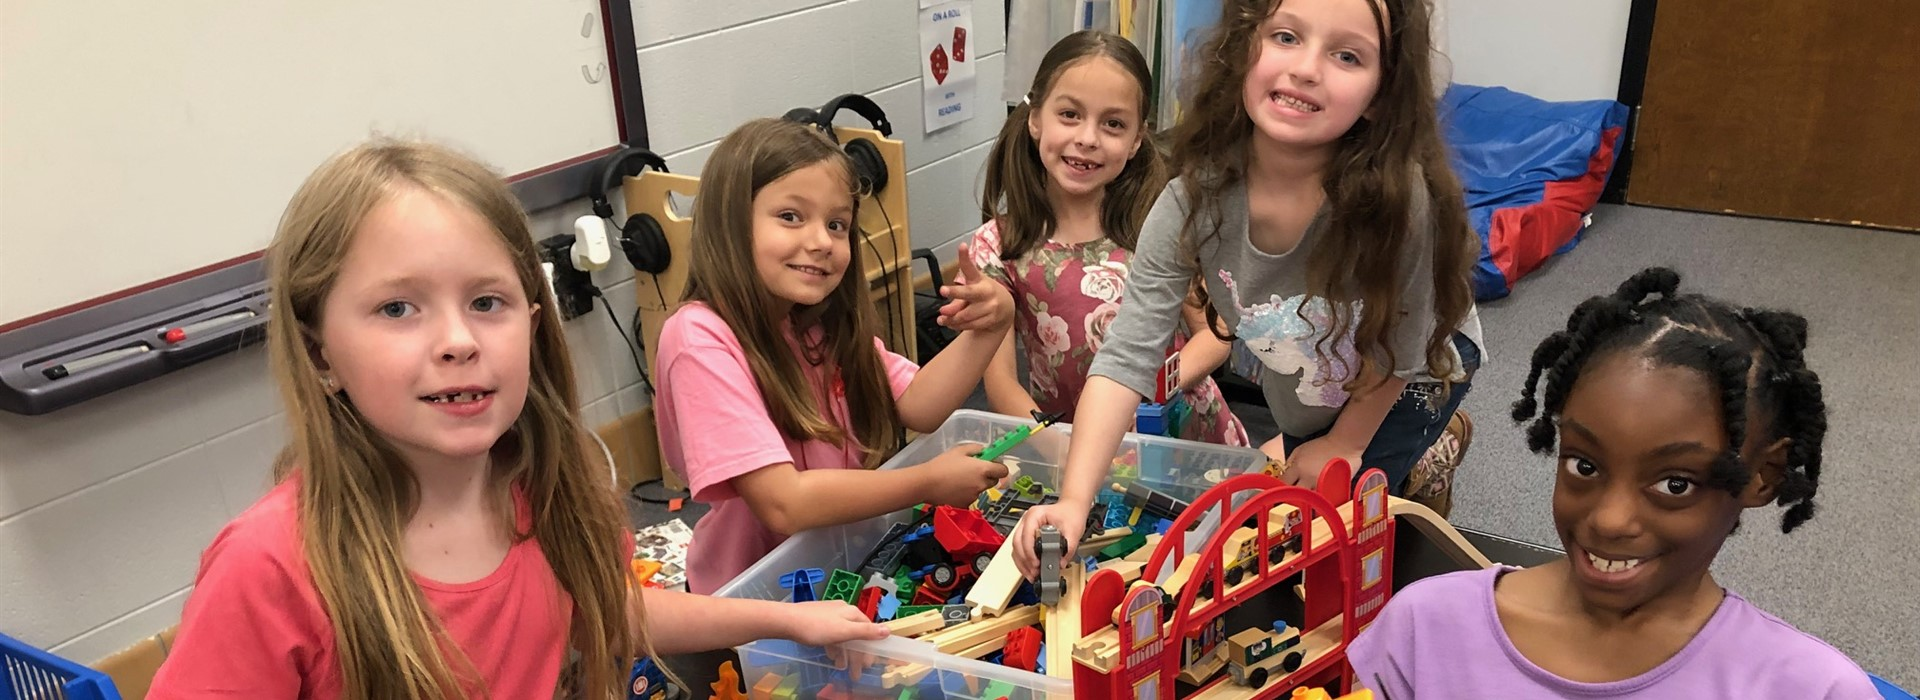 STEM Lego Center